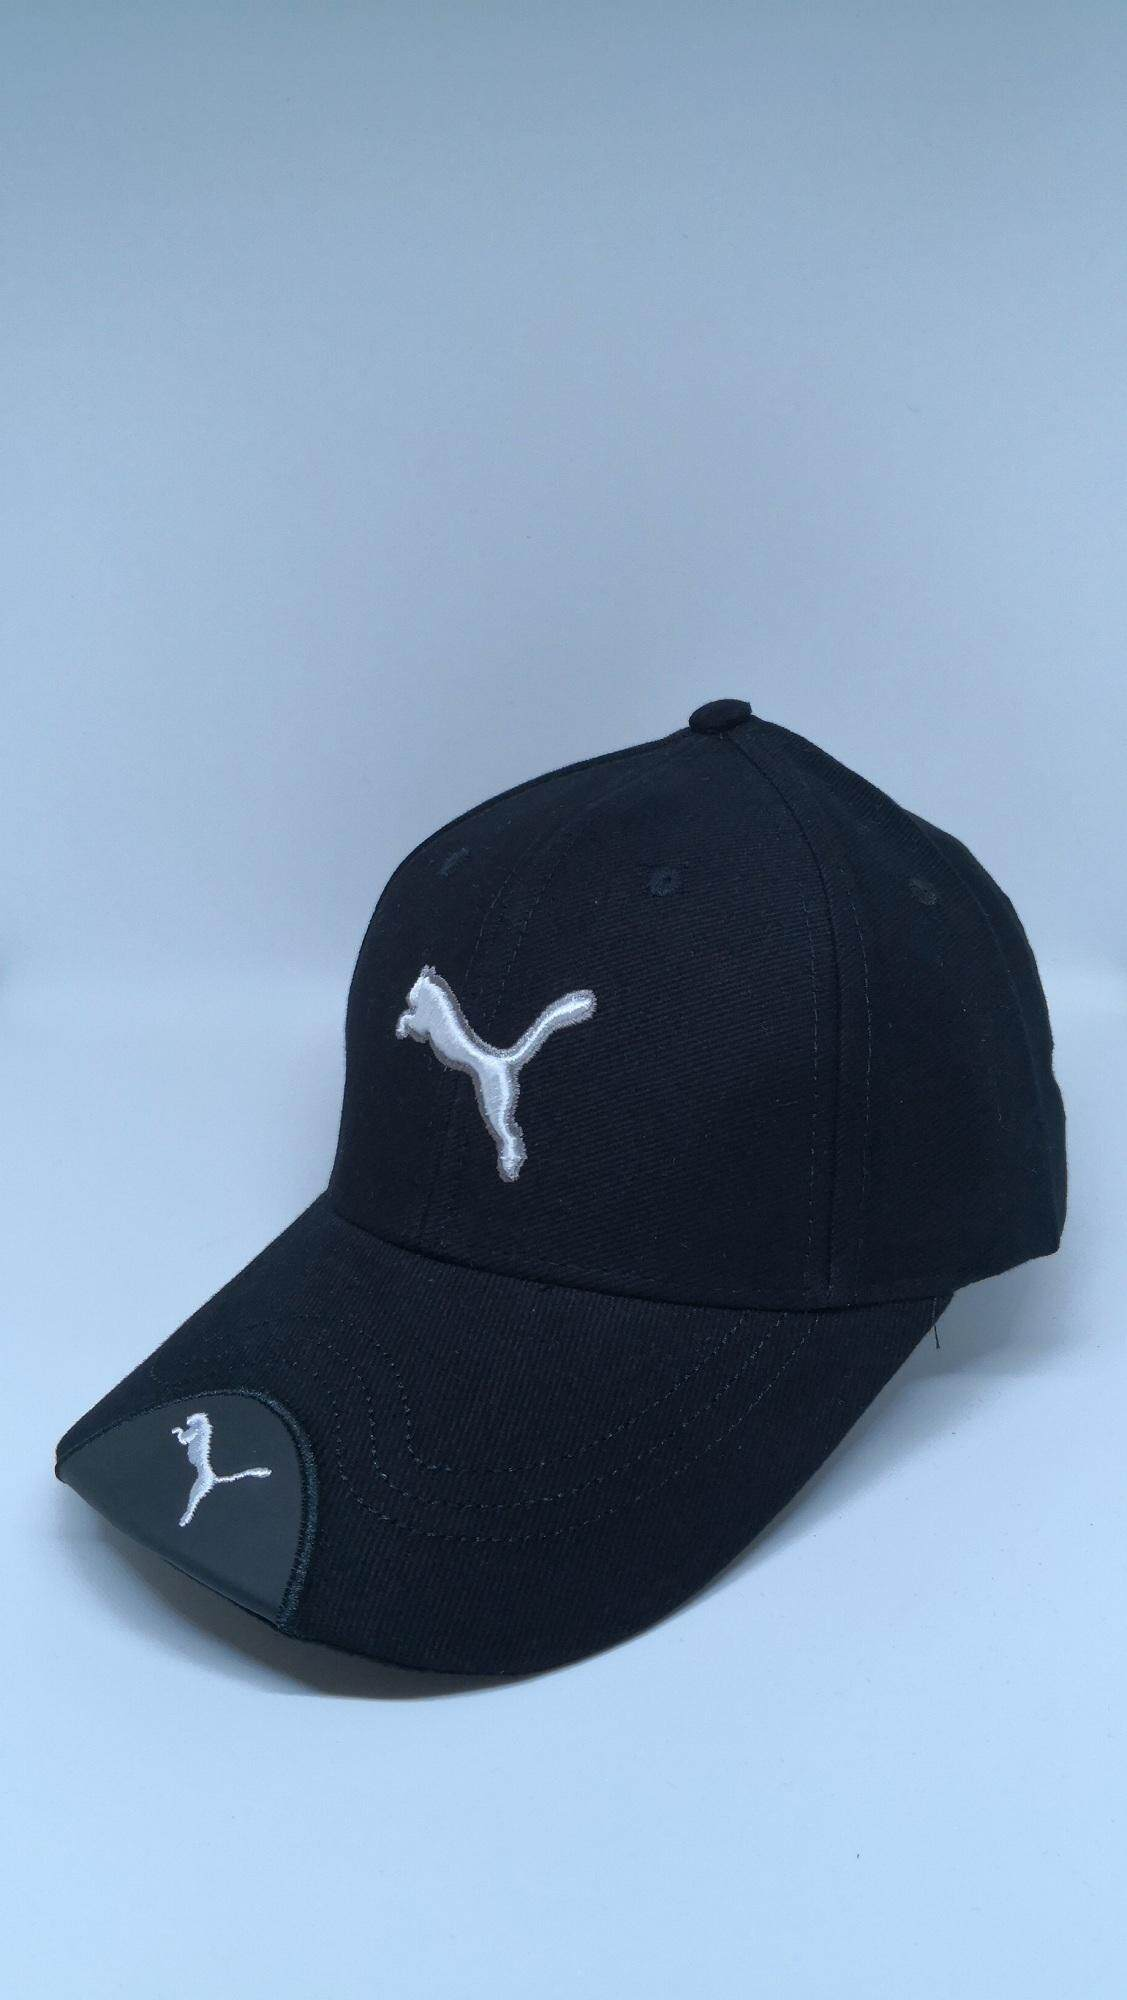 e1fb11d4c6b74 Men s Hats   Caps - Buy Men s Hats   Caps at Best Price in Malaysia ...